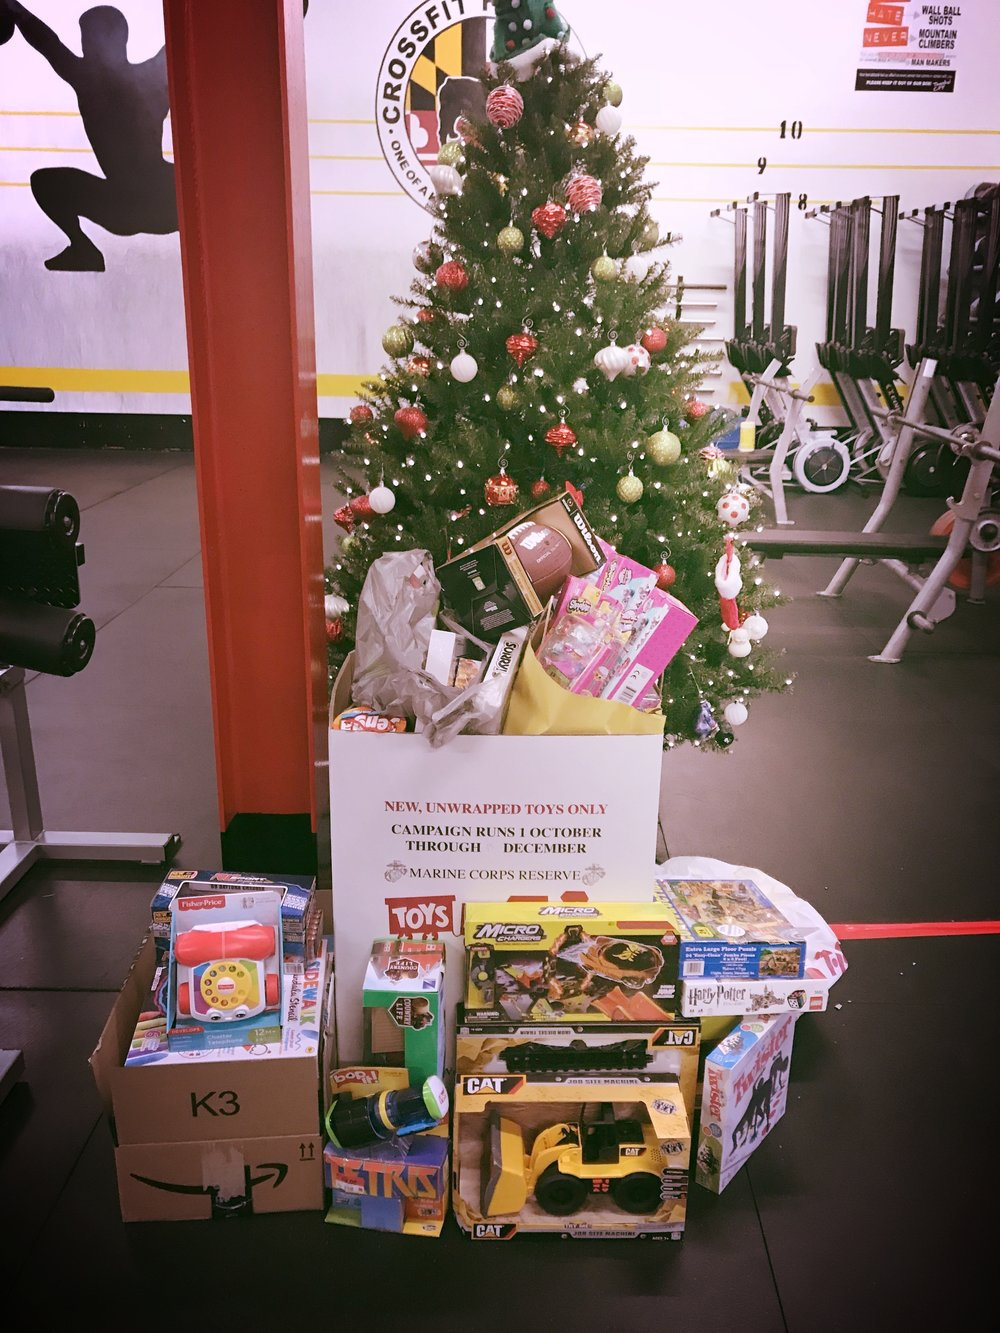 The Toys for Tots drive was a success! We filled two big boxes with donations. THANK YOU for YOUR HELP!!! Happy Holidays!!!